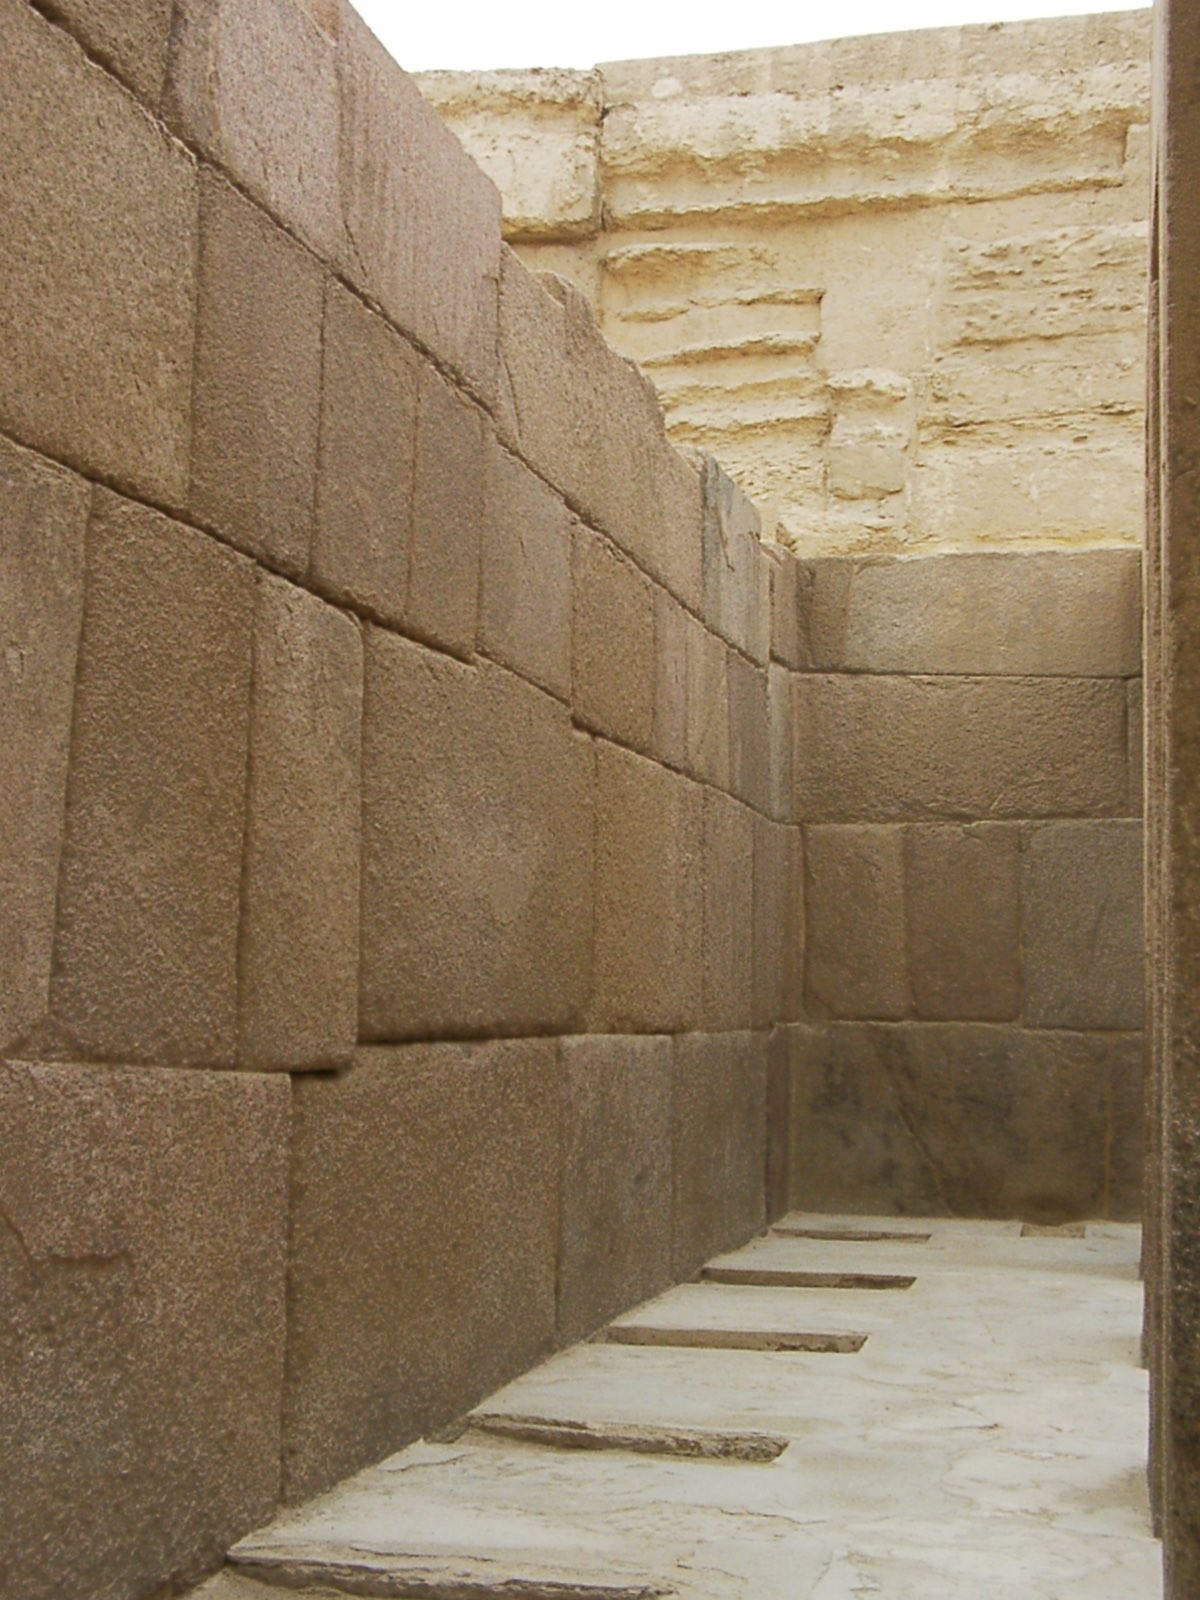 Archeologists think the Valley Temple predates the Sphinx (credit: HoremWeb)